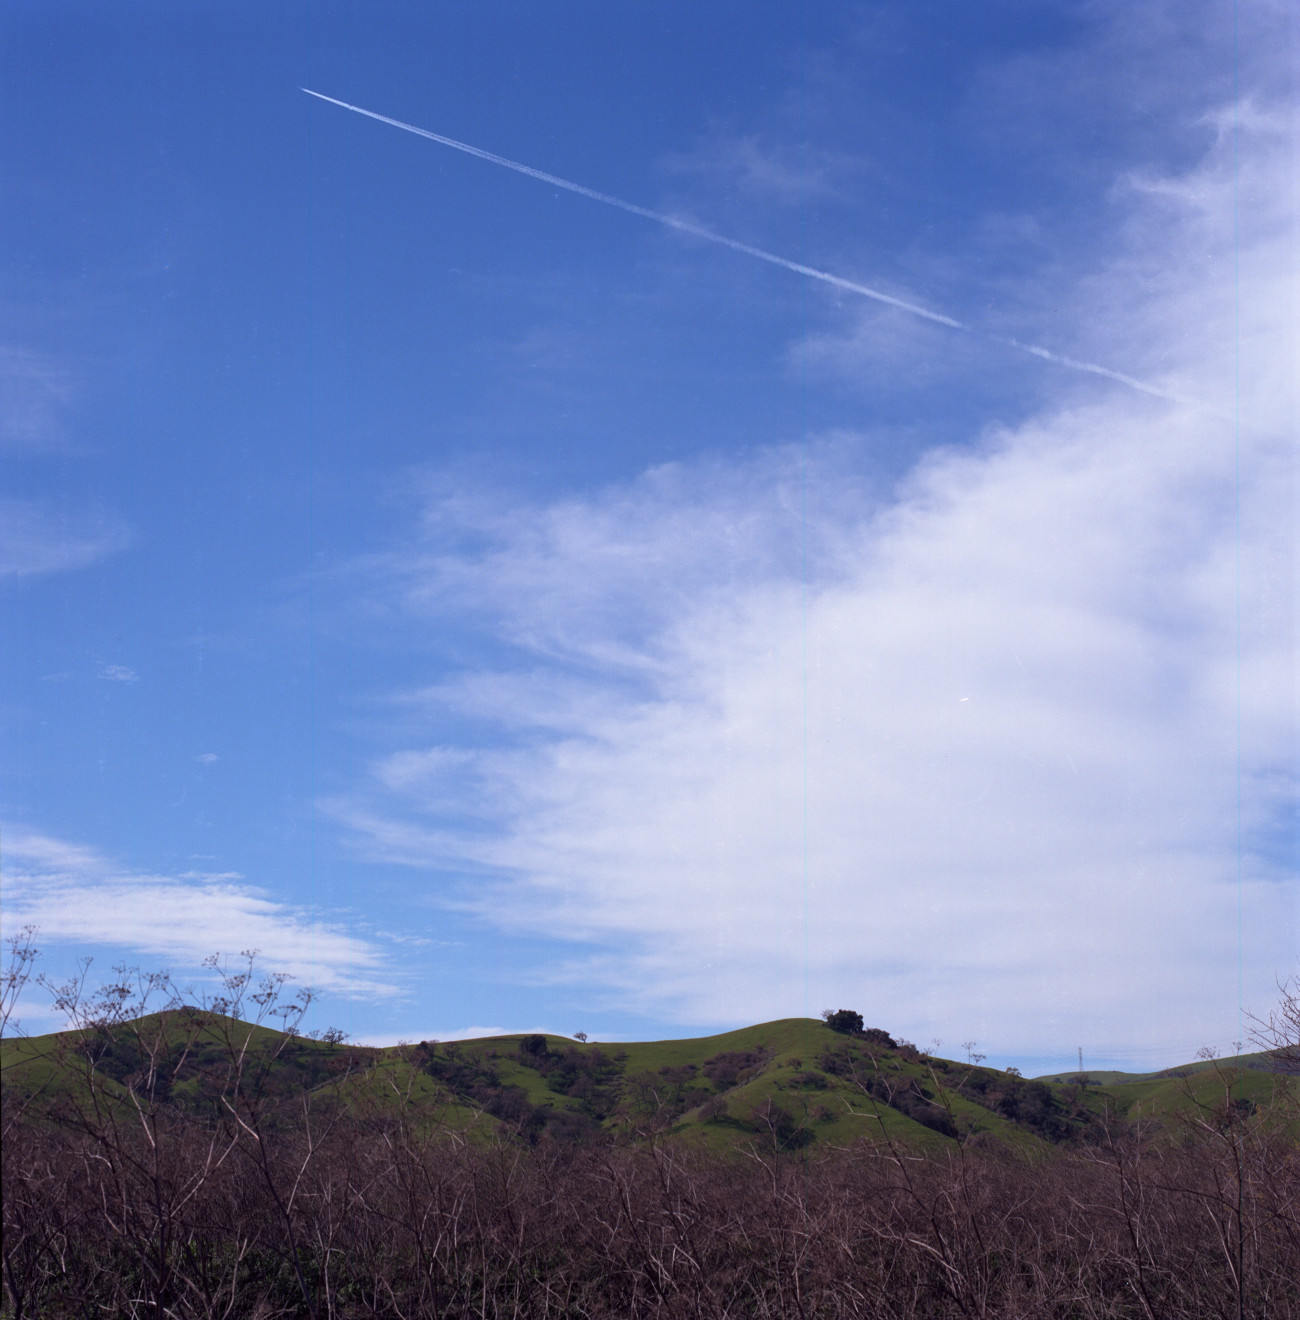 Contrail emerges from a cloud bank and keeps ascending to the left into the blue sky over the hills east of Bailey Avenue.